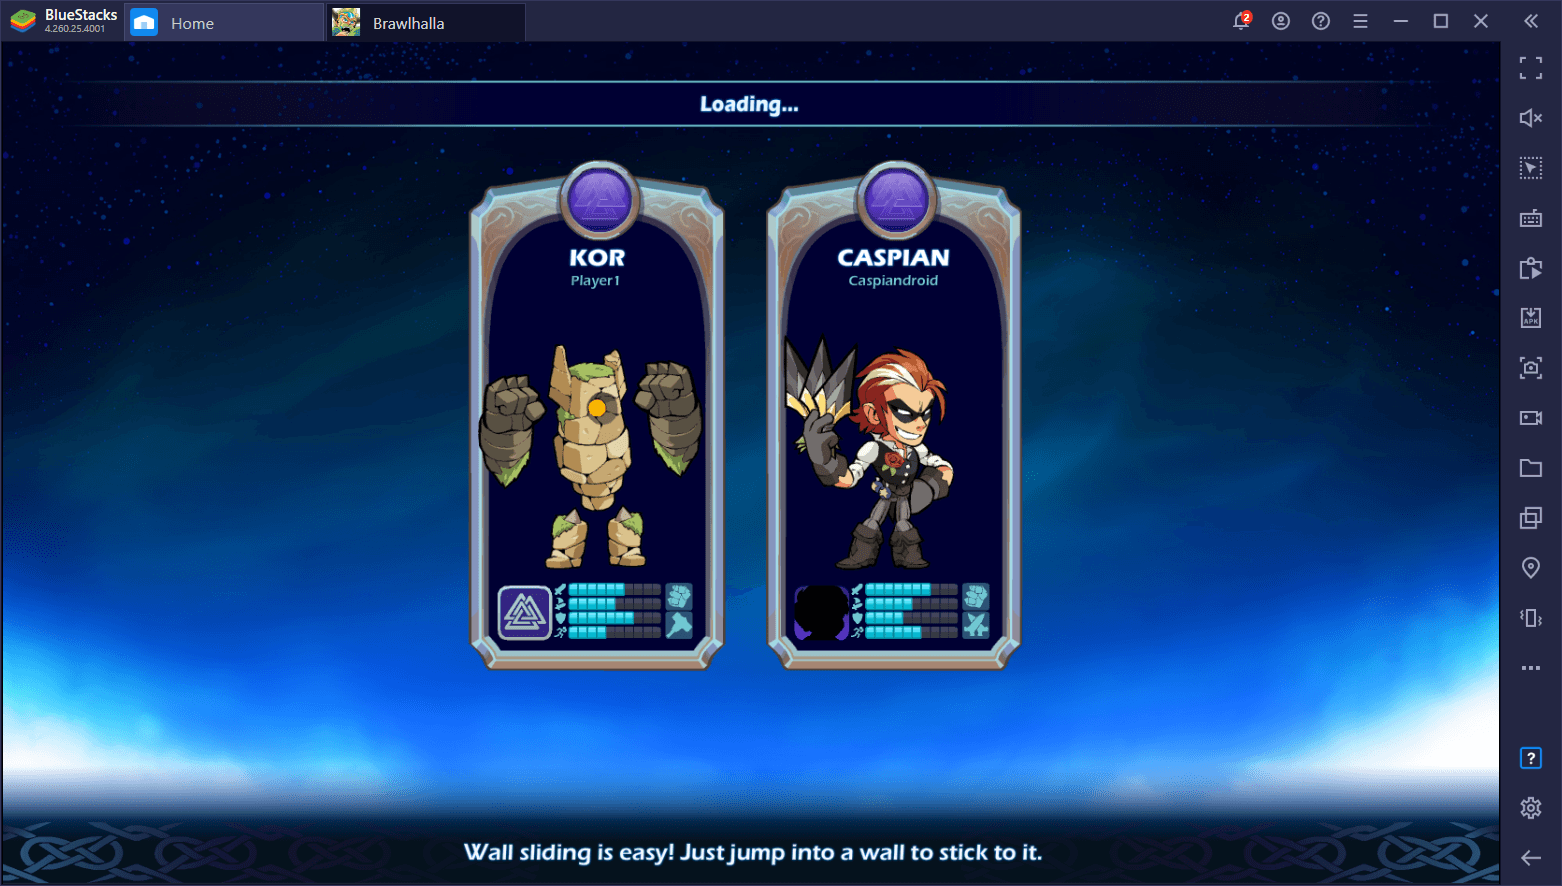 Brawlhalla Weapons Guide – An Overview of the Different Weapons and Their Matchups